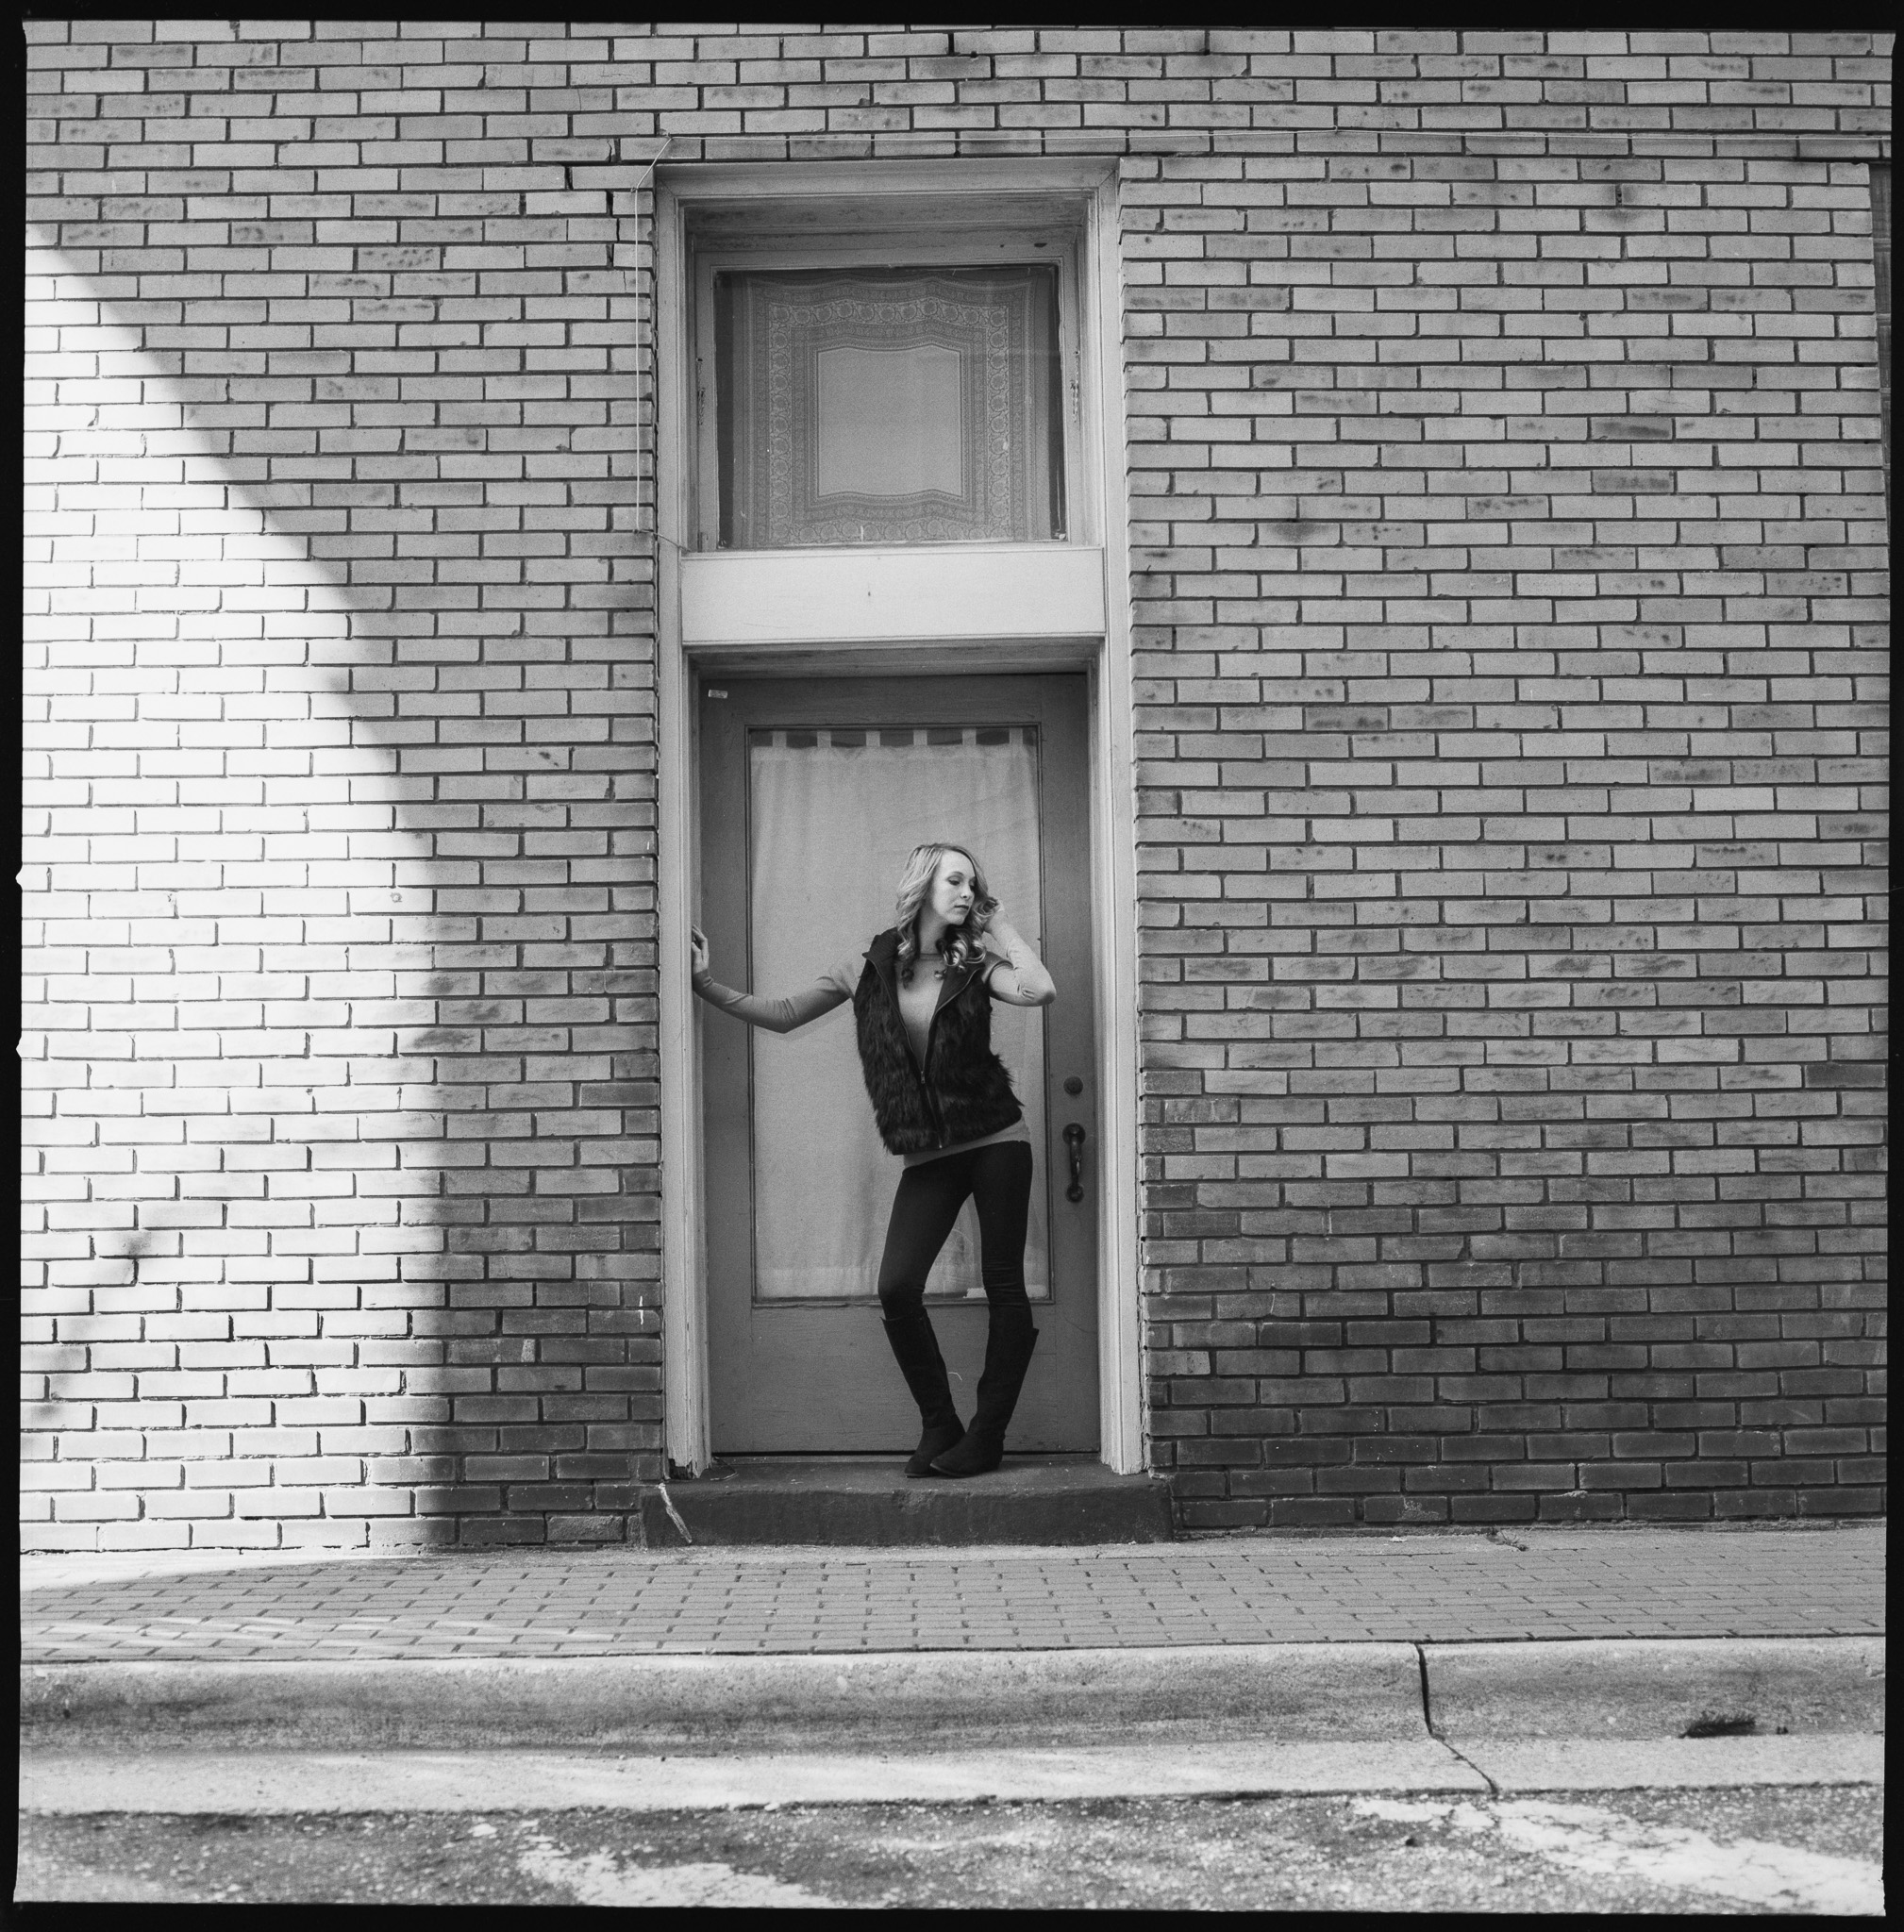 Model: Nicolette Grenier  Cameras used: Hasselblad 501CM  Film: Hp5+ 120 medium format